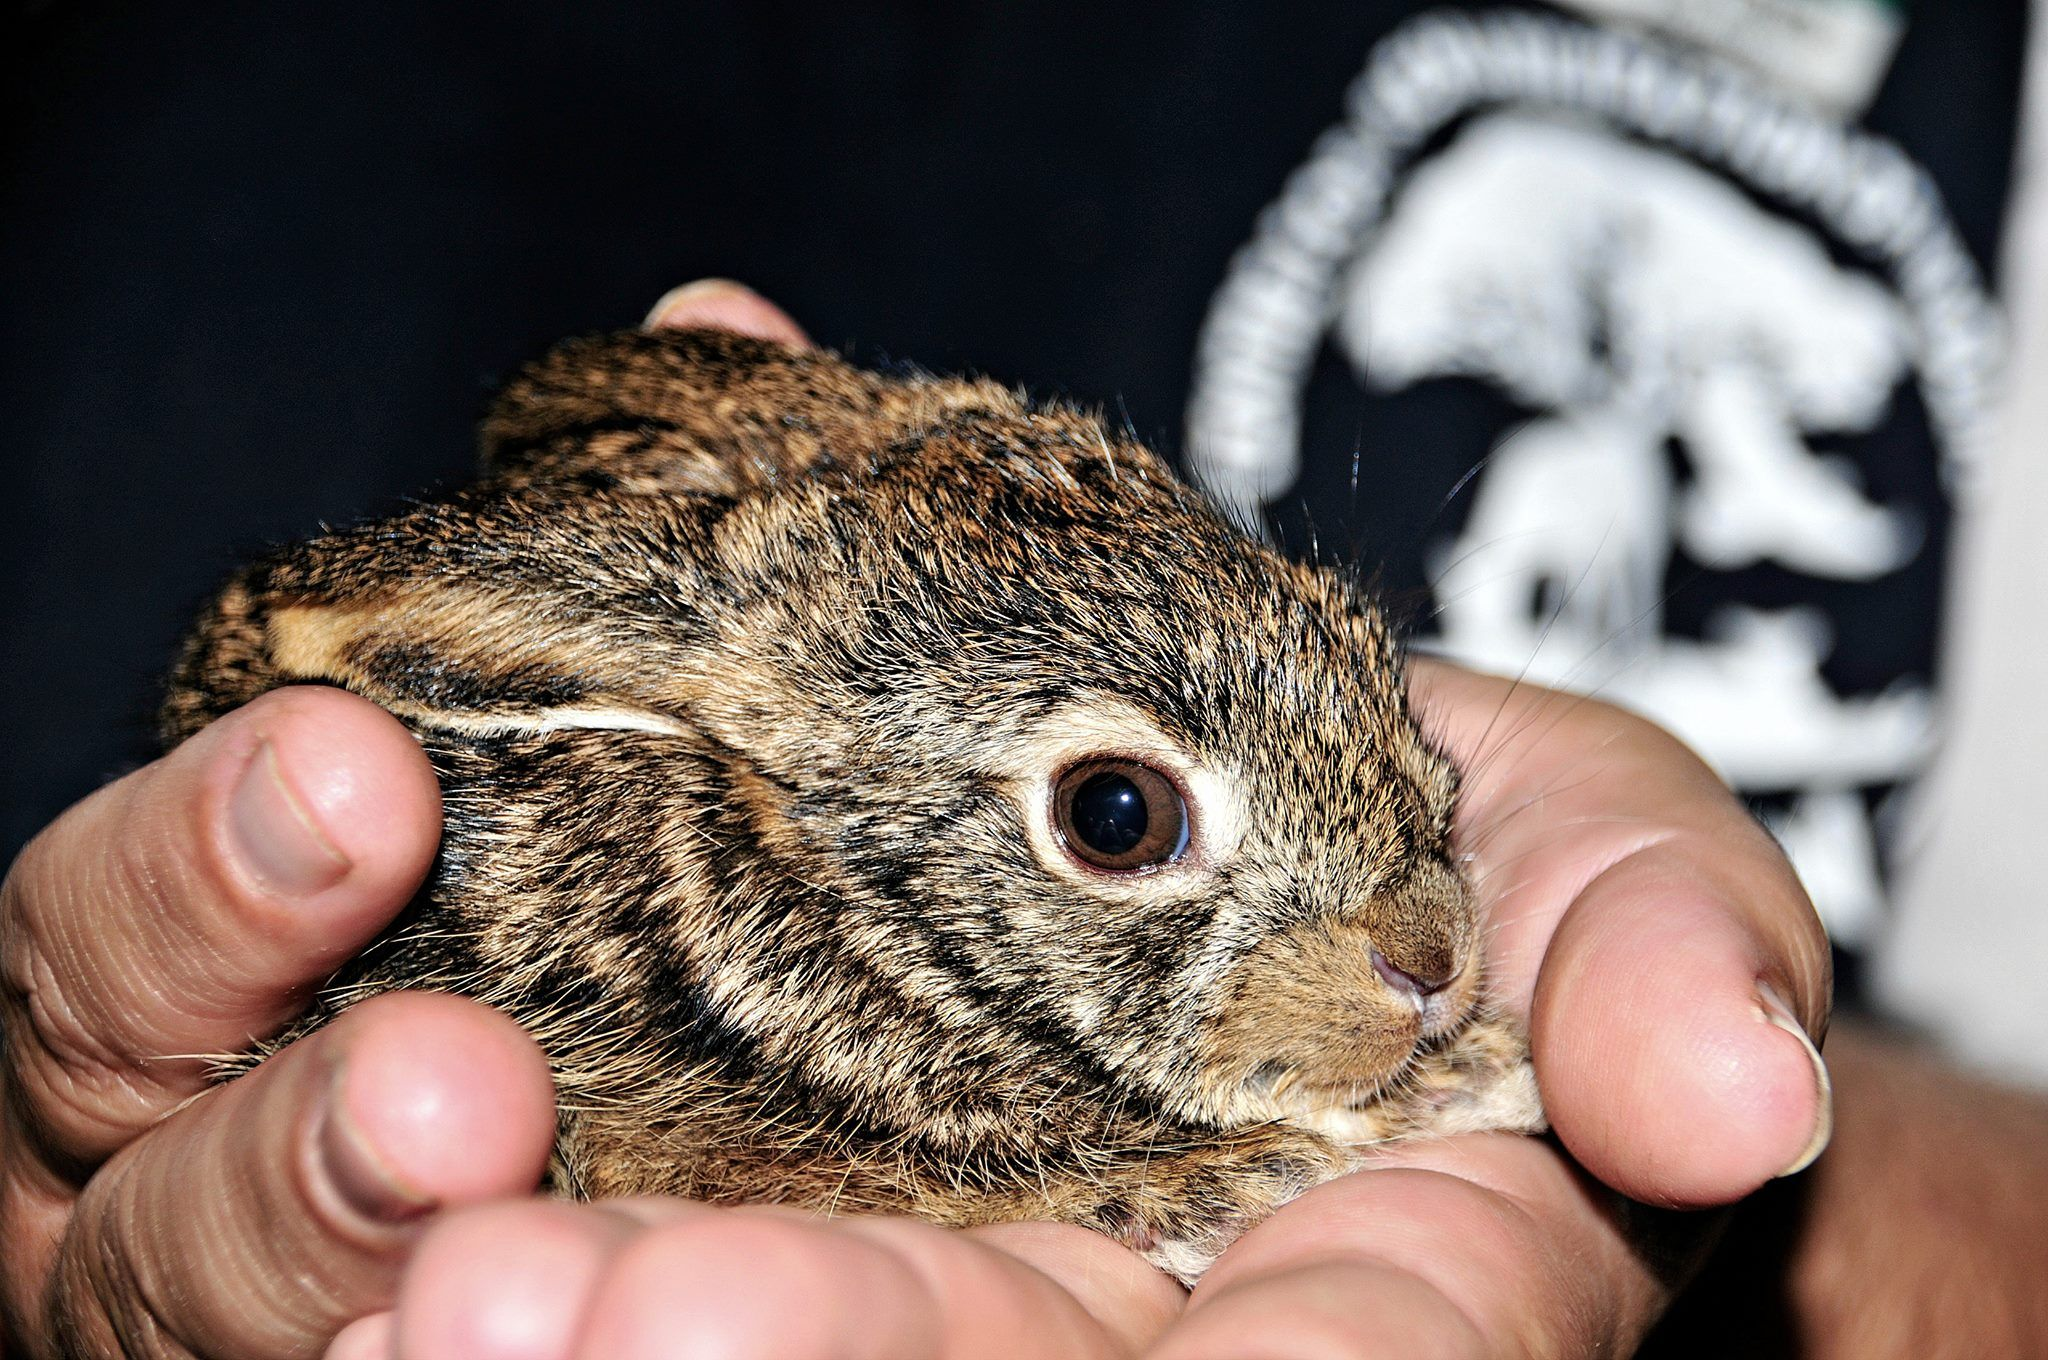 This Baby Scrub Hare Is One Of The Many Spring Babies That Are